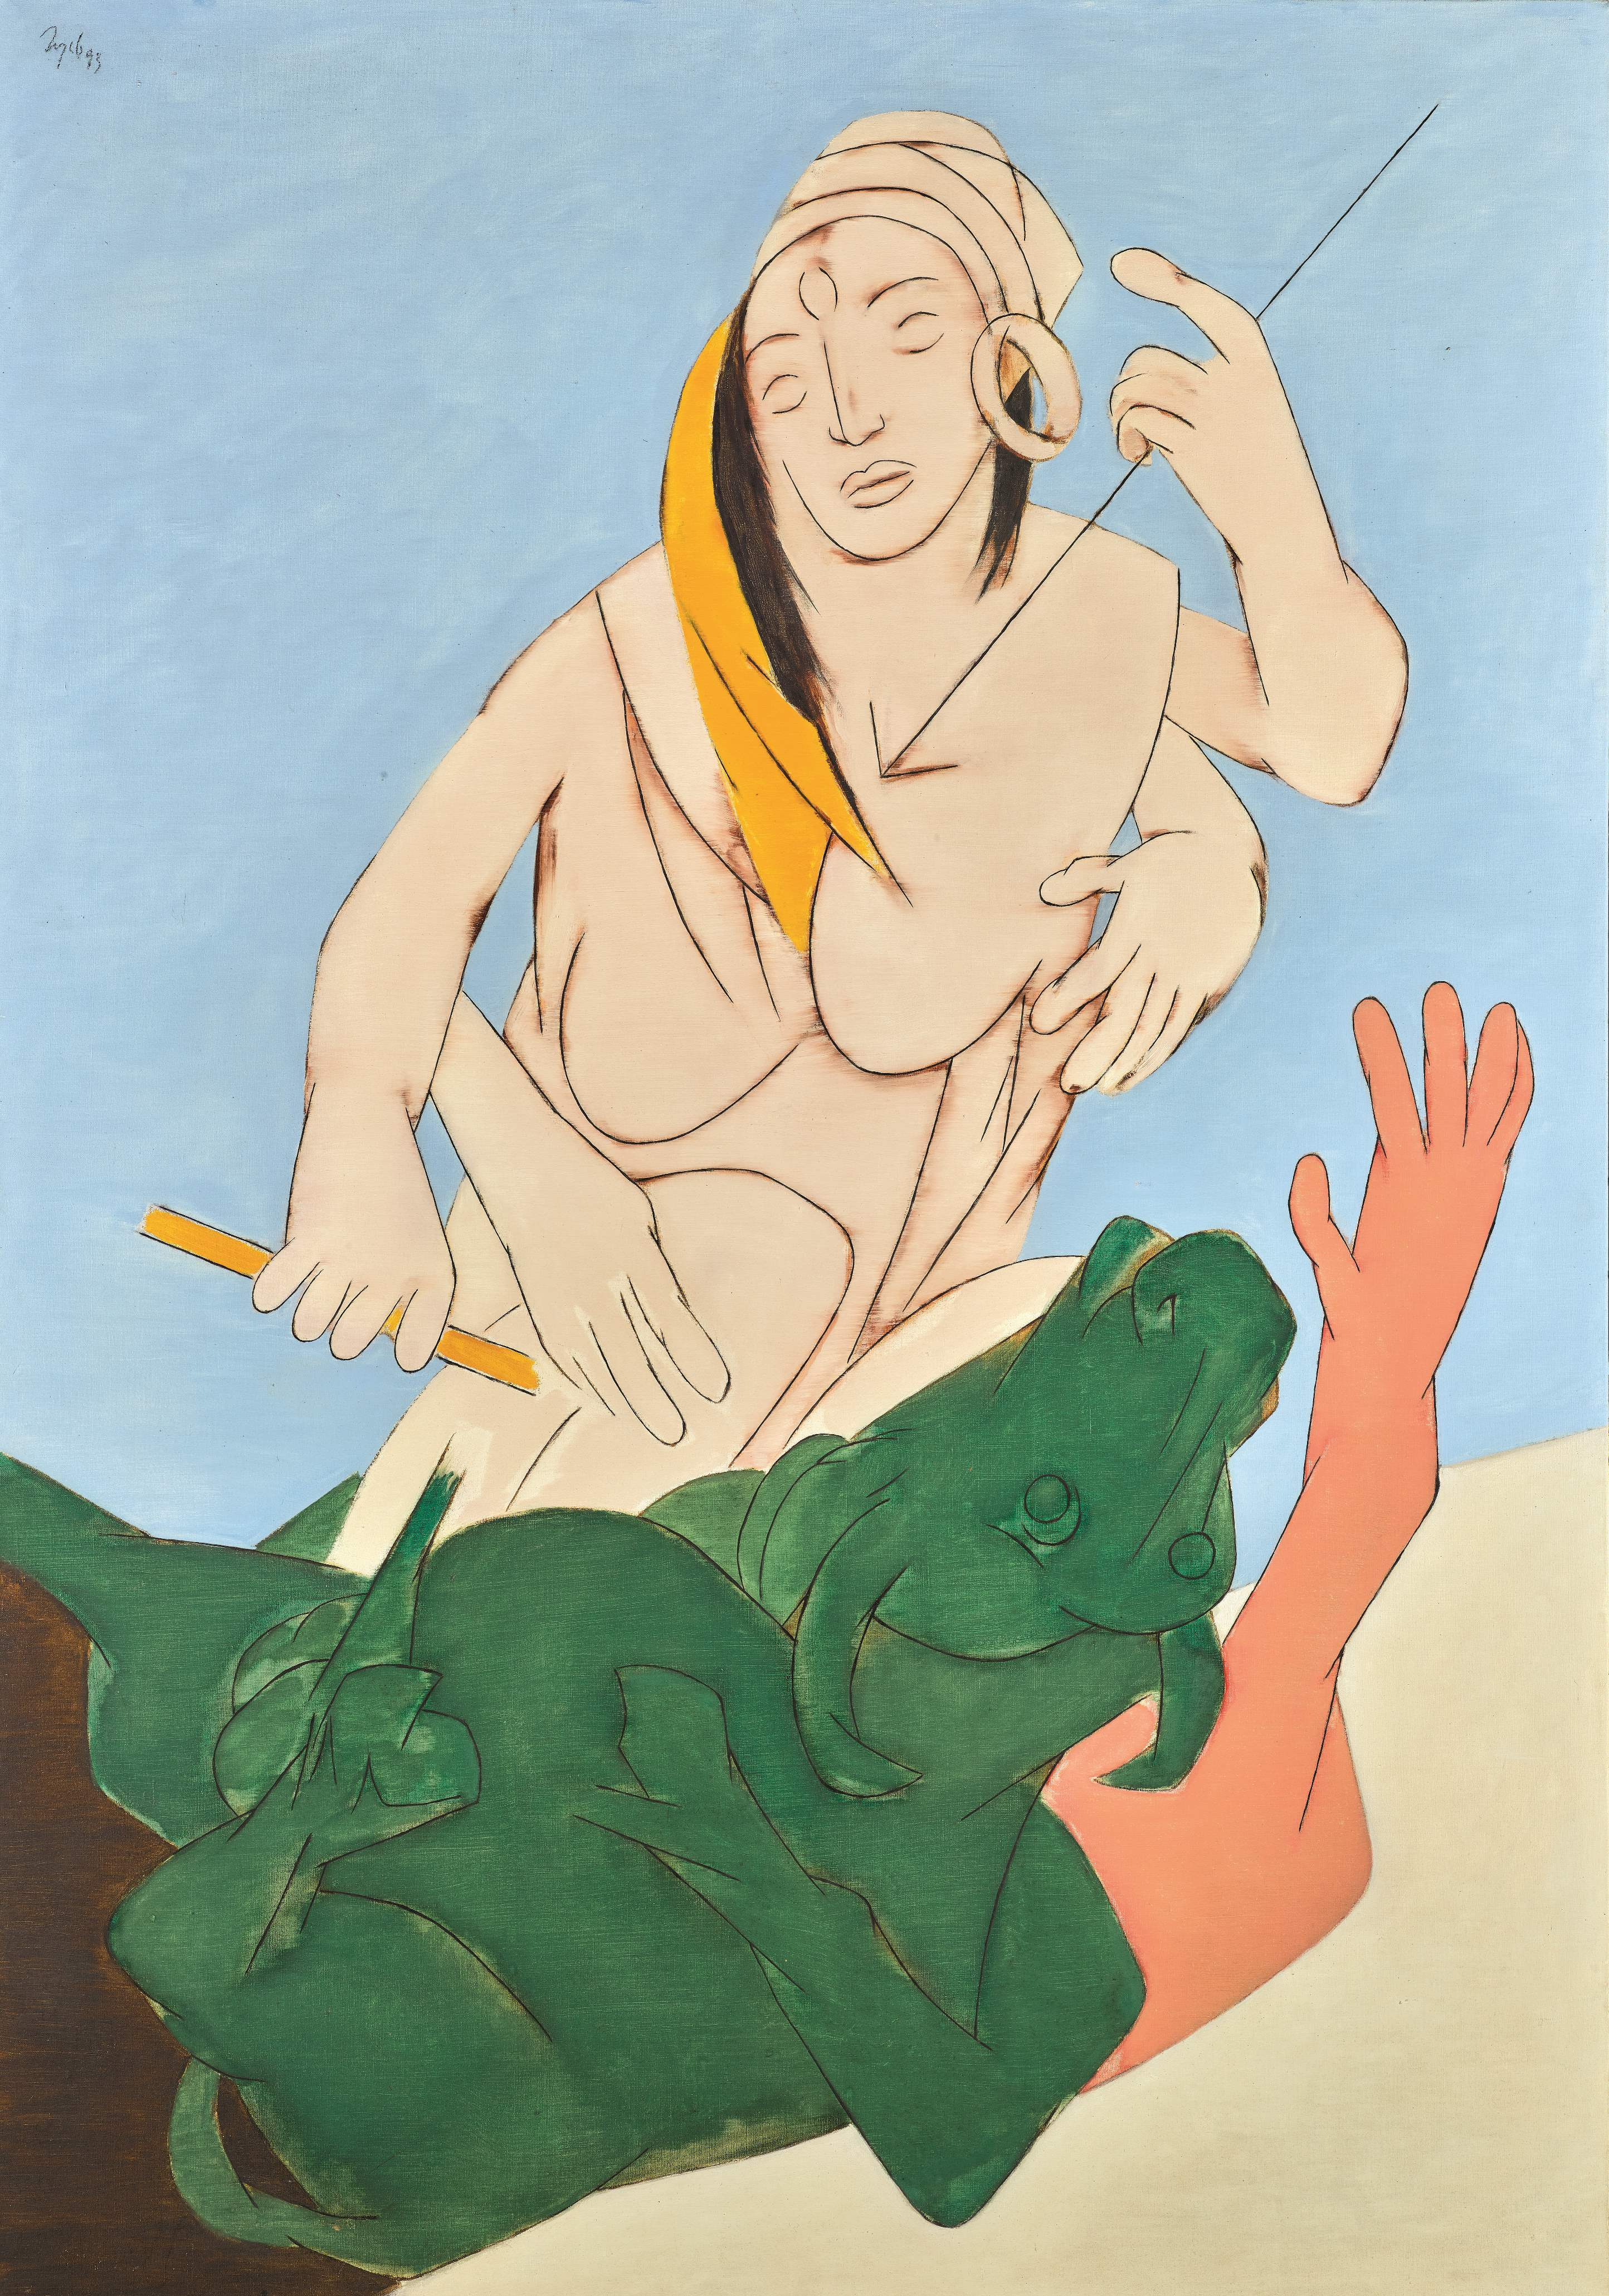 Tyeb Mehta's Durga Mahisasura Mardini sold for Rs 20.49 crore, against an estimated price of Rs 20 crore to Rs 30 crore, reflecting a strong demand for the artist in recent months